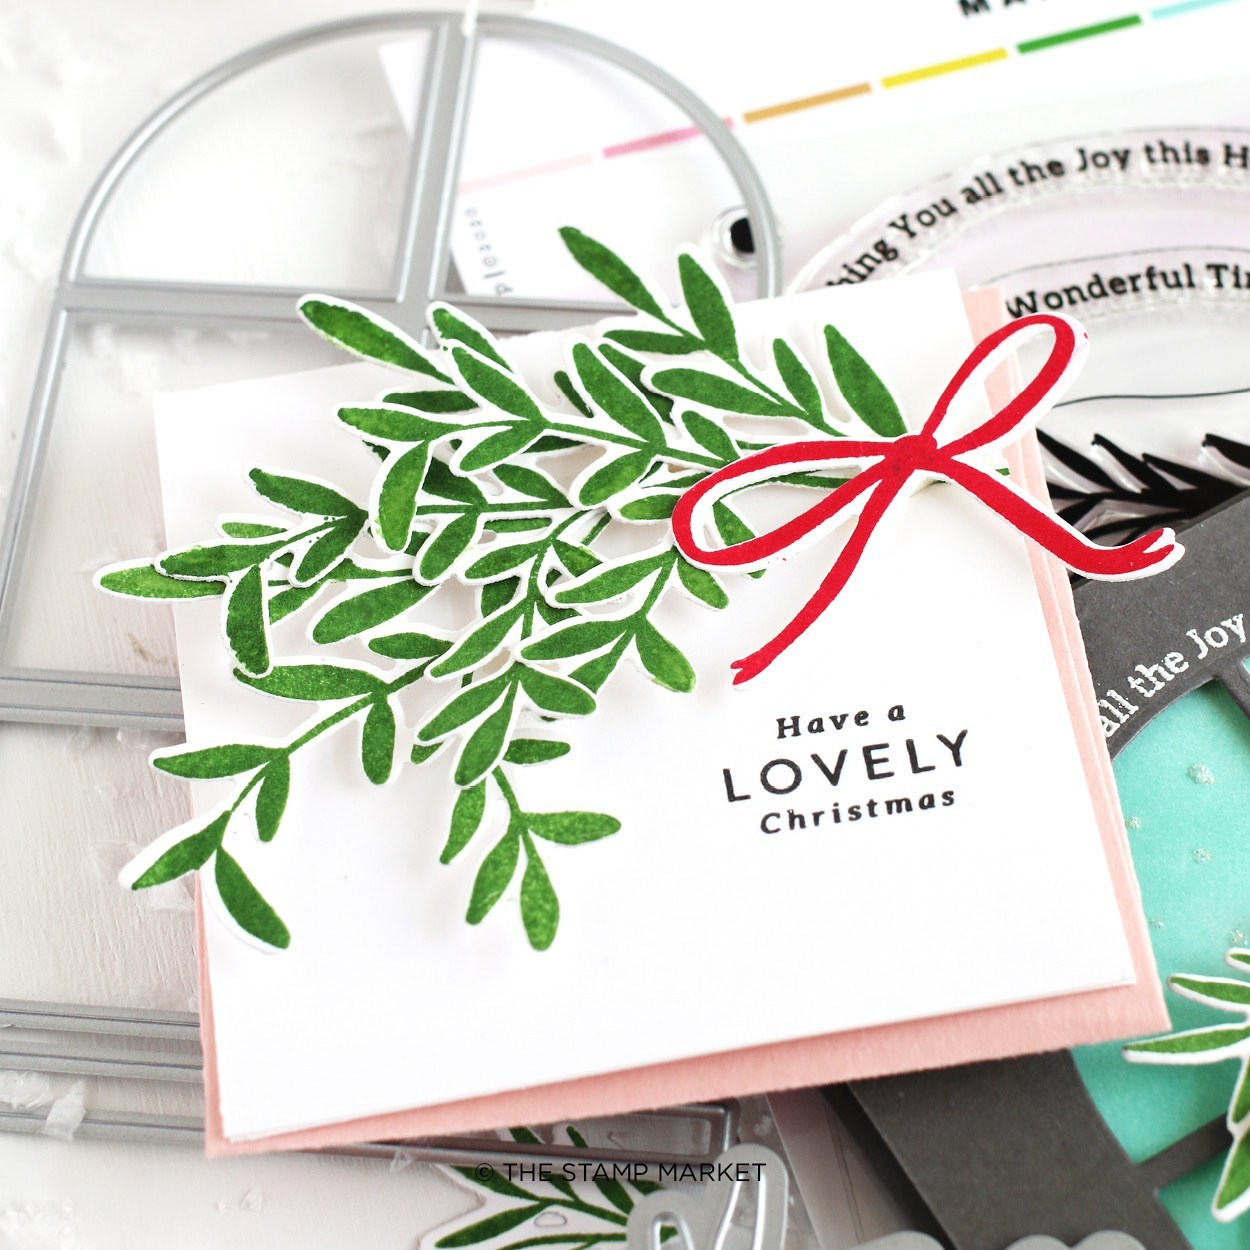 The Stamp Market セット♪ - Lovely Christmas